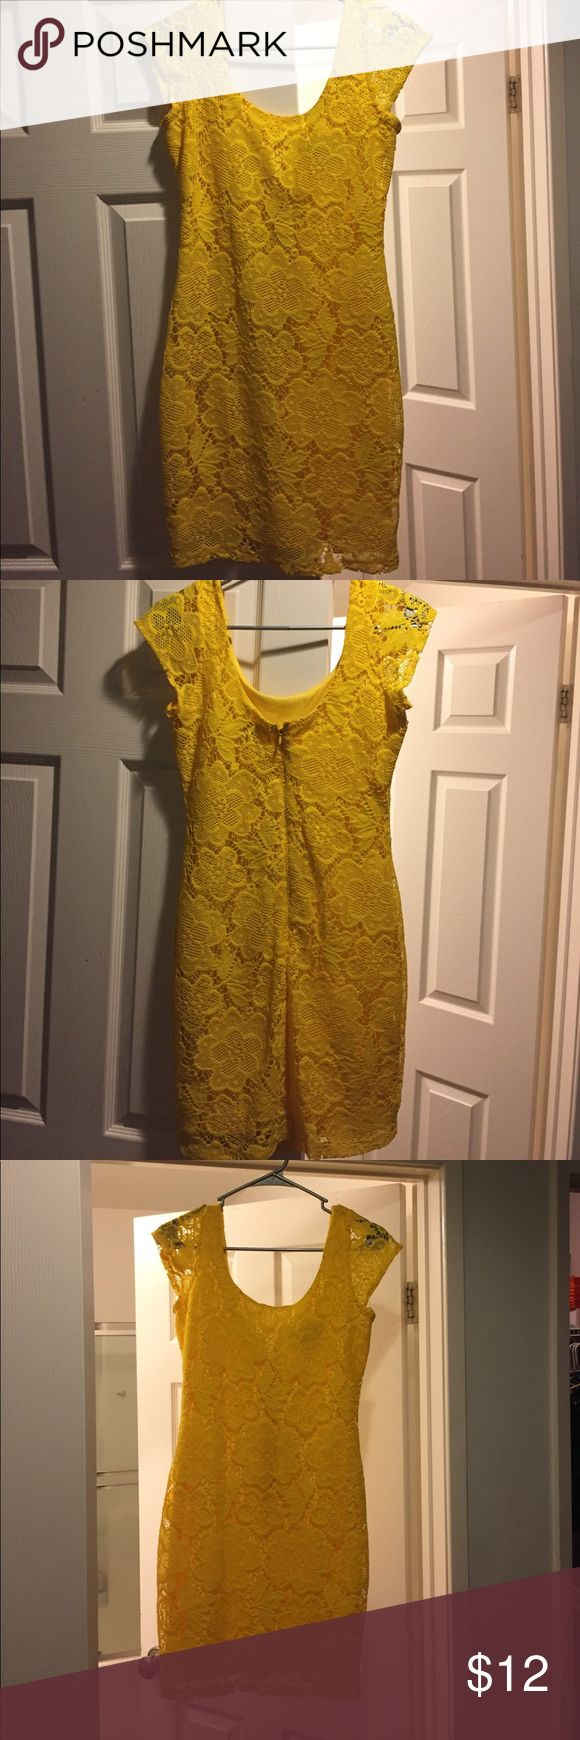 Perfect Yellow Tight fitting dress Yellow tight fitting dress. Brand New, Never worn and in perfect condition. Dresses Mini